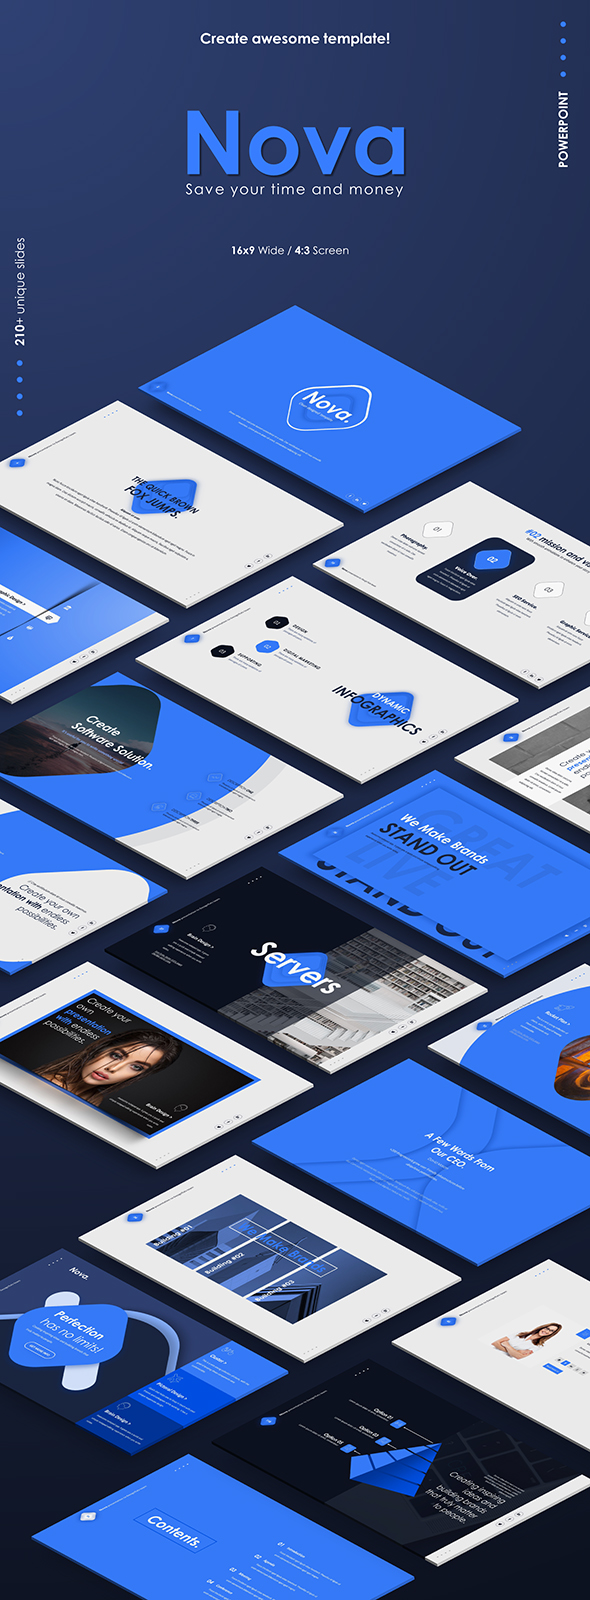 Nova Powerpoint Presentation Template - Business PowerPoint Templates